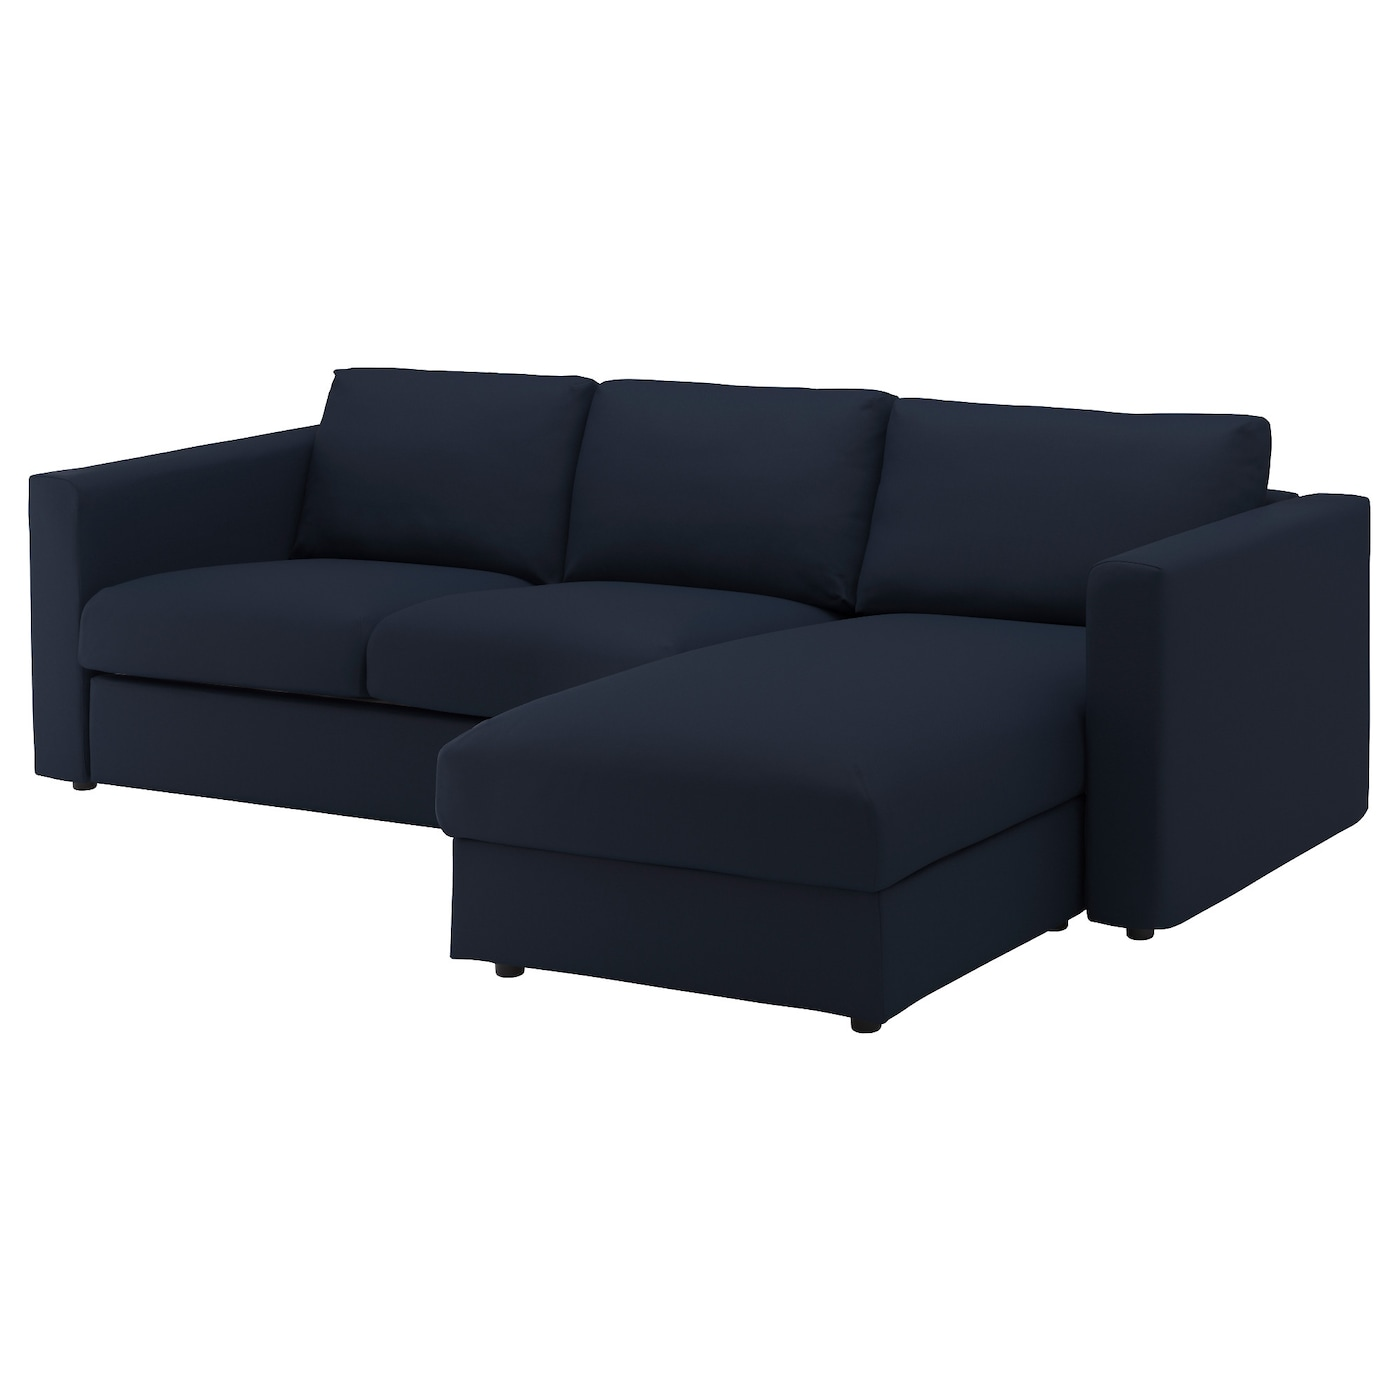 3 Seat Sofa With Chaise Of Vimle 3 Seat Sofa With Chaise Longue Gr Sbo Black Blue Ikea